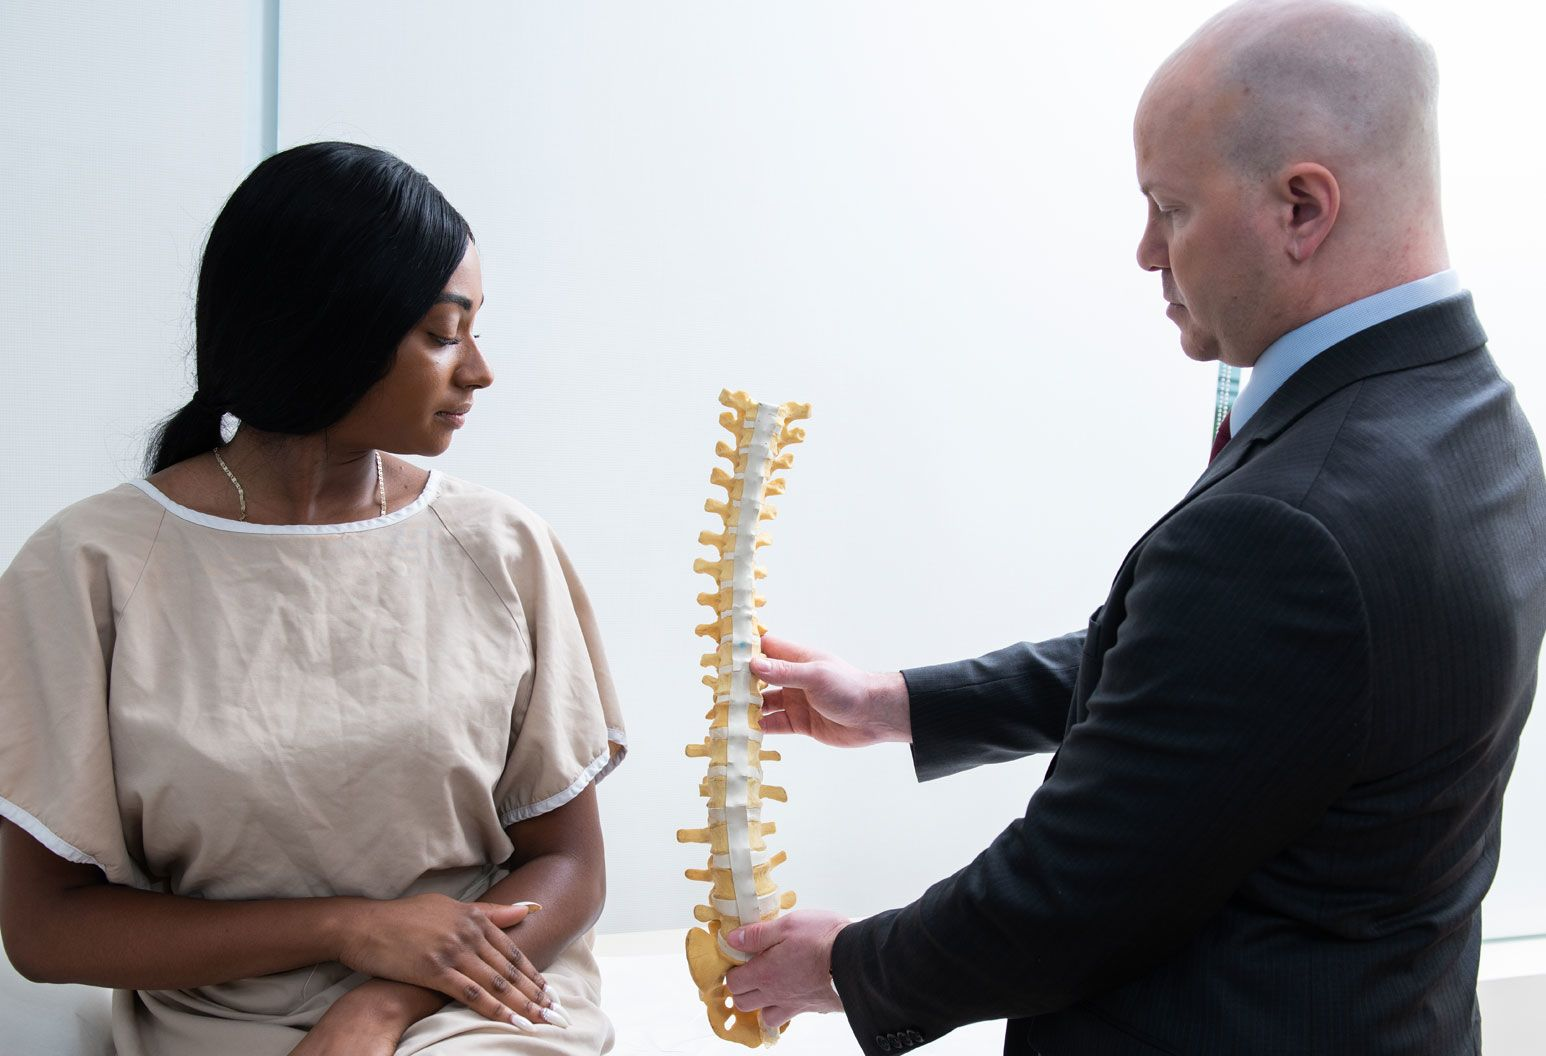 A doctor shows a model spine to a female patient wearing a patient gown.